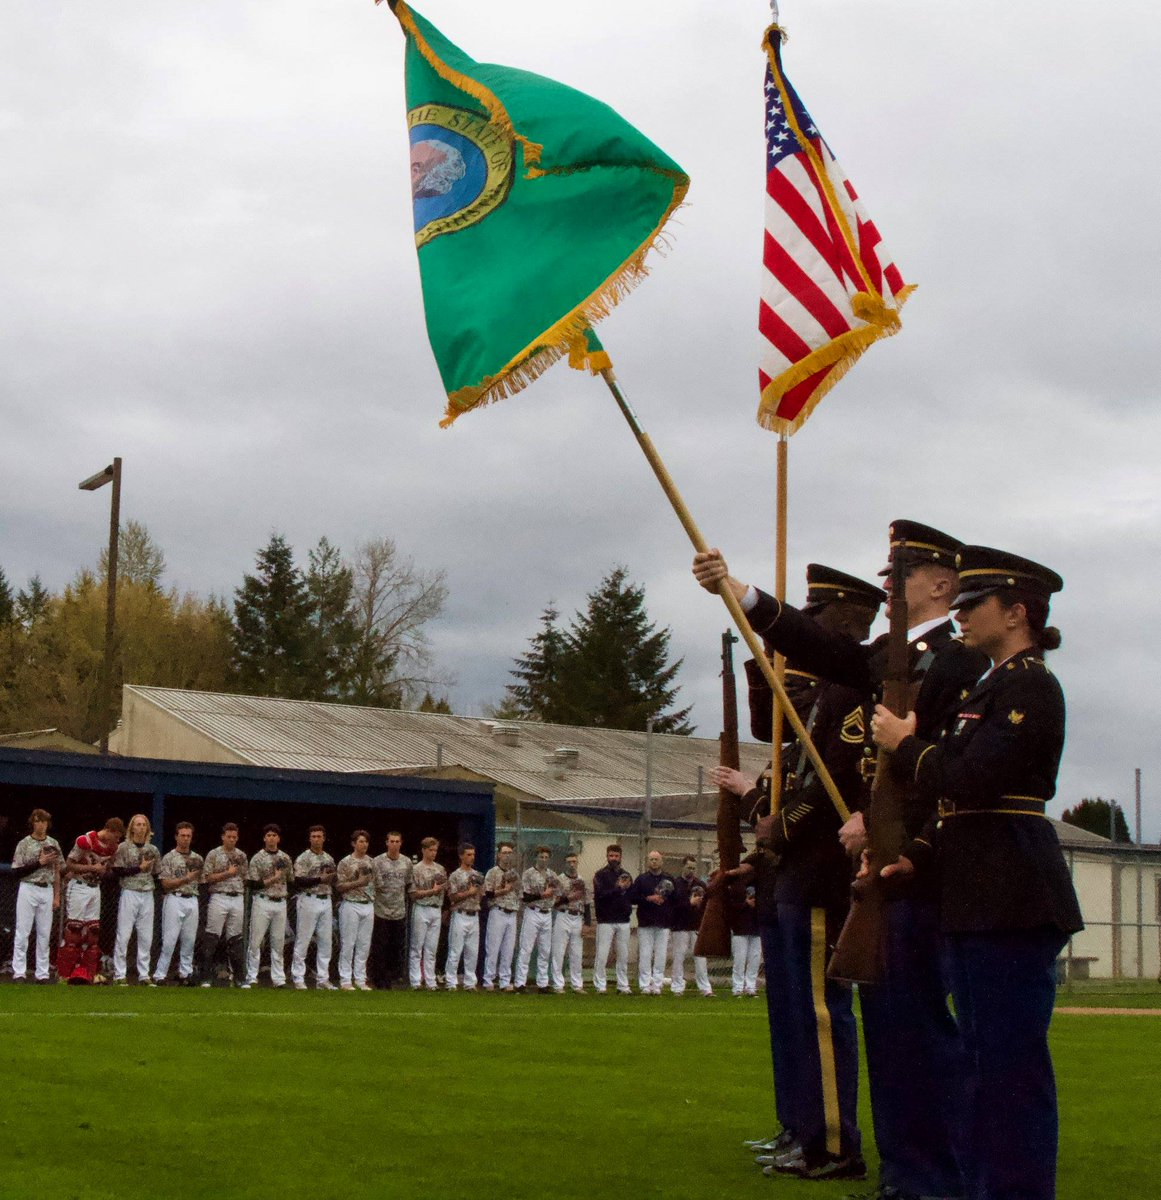 #Bayonet Division Color Guard participated in Olympia HS&#39;s Military Appreciation Day, April 17. The event recognized Col. Bruce P. Crandall, a Medal of Honor recipient, at the school&#39;s baseball field named in his honor. #TrustInMe #ArmyValues #MeetYourArmy @FORSCOM @USArmy<br>http://pic.twitter.com/4ez5WEMx77